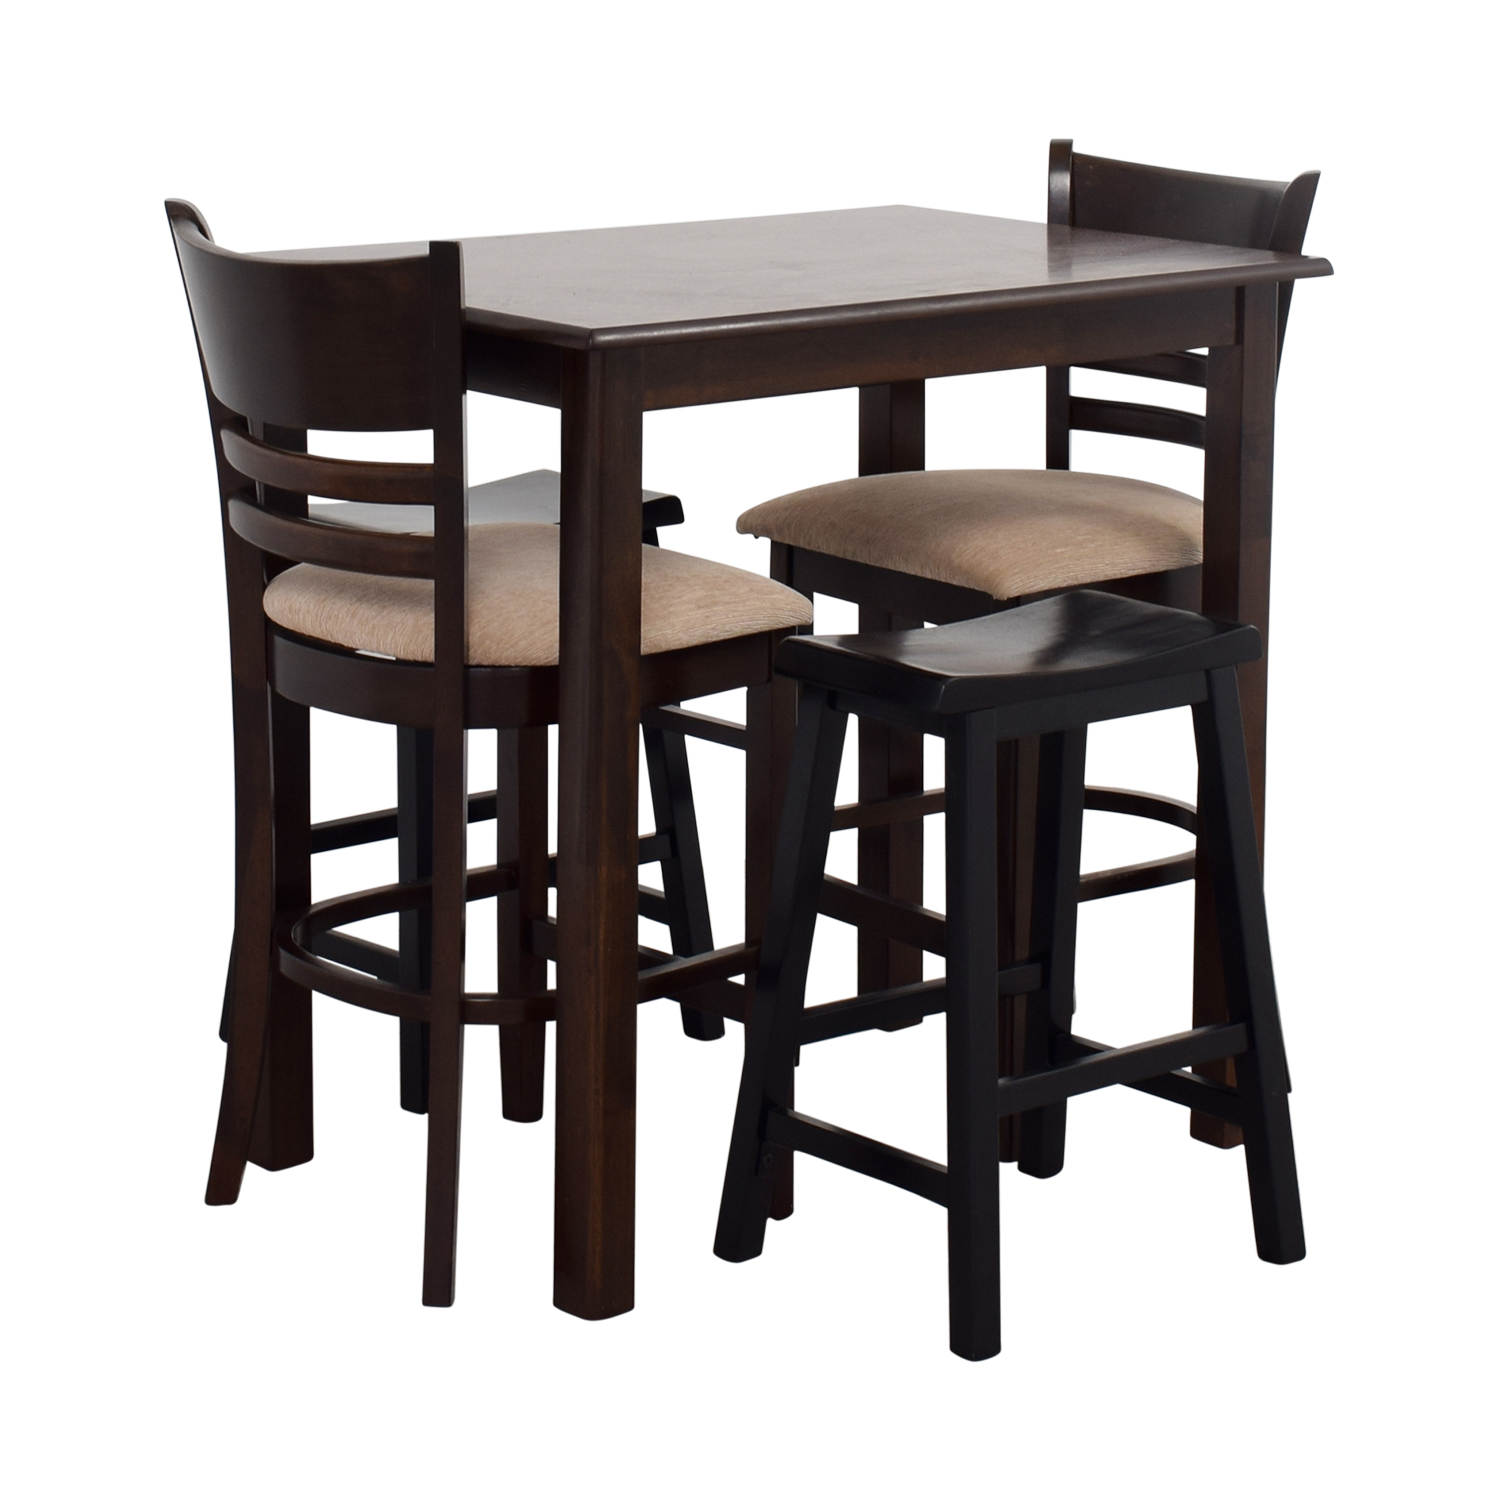 Bar Stools And Table Set 70 Off Simple Bar Table With Two Chairs And Two Stools